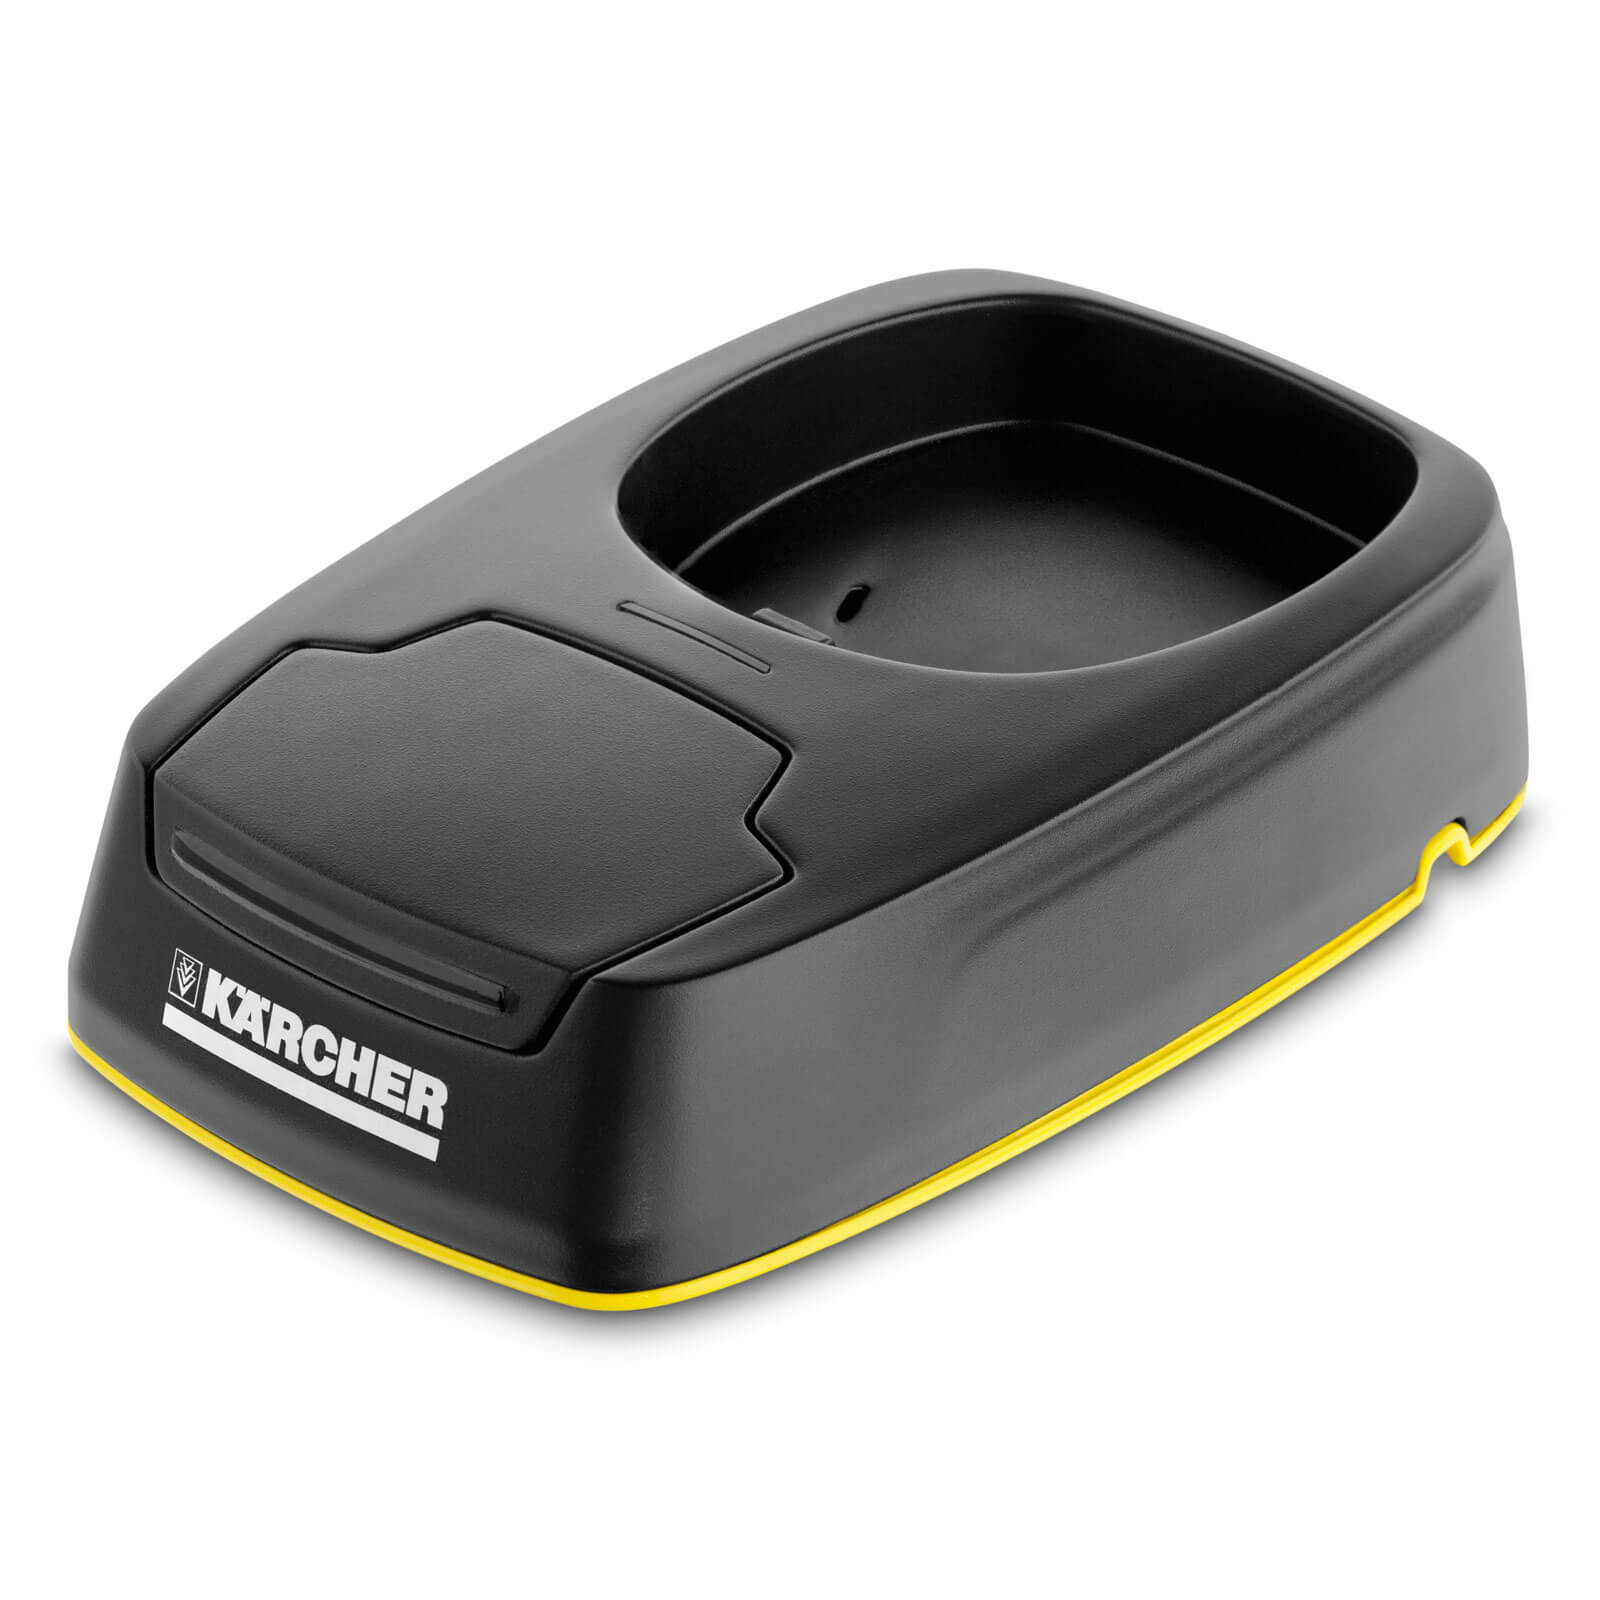 Karcher Genuine Replacement or Spare Charger for WV5 Window Vacs